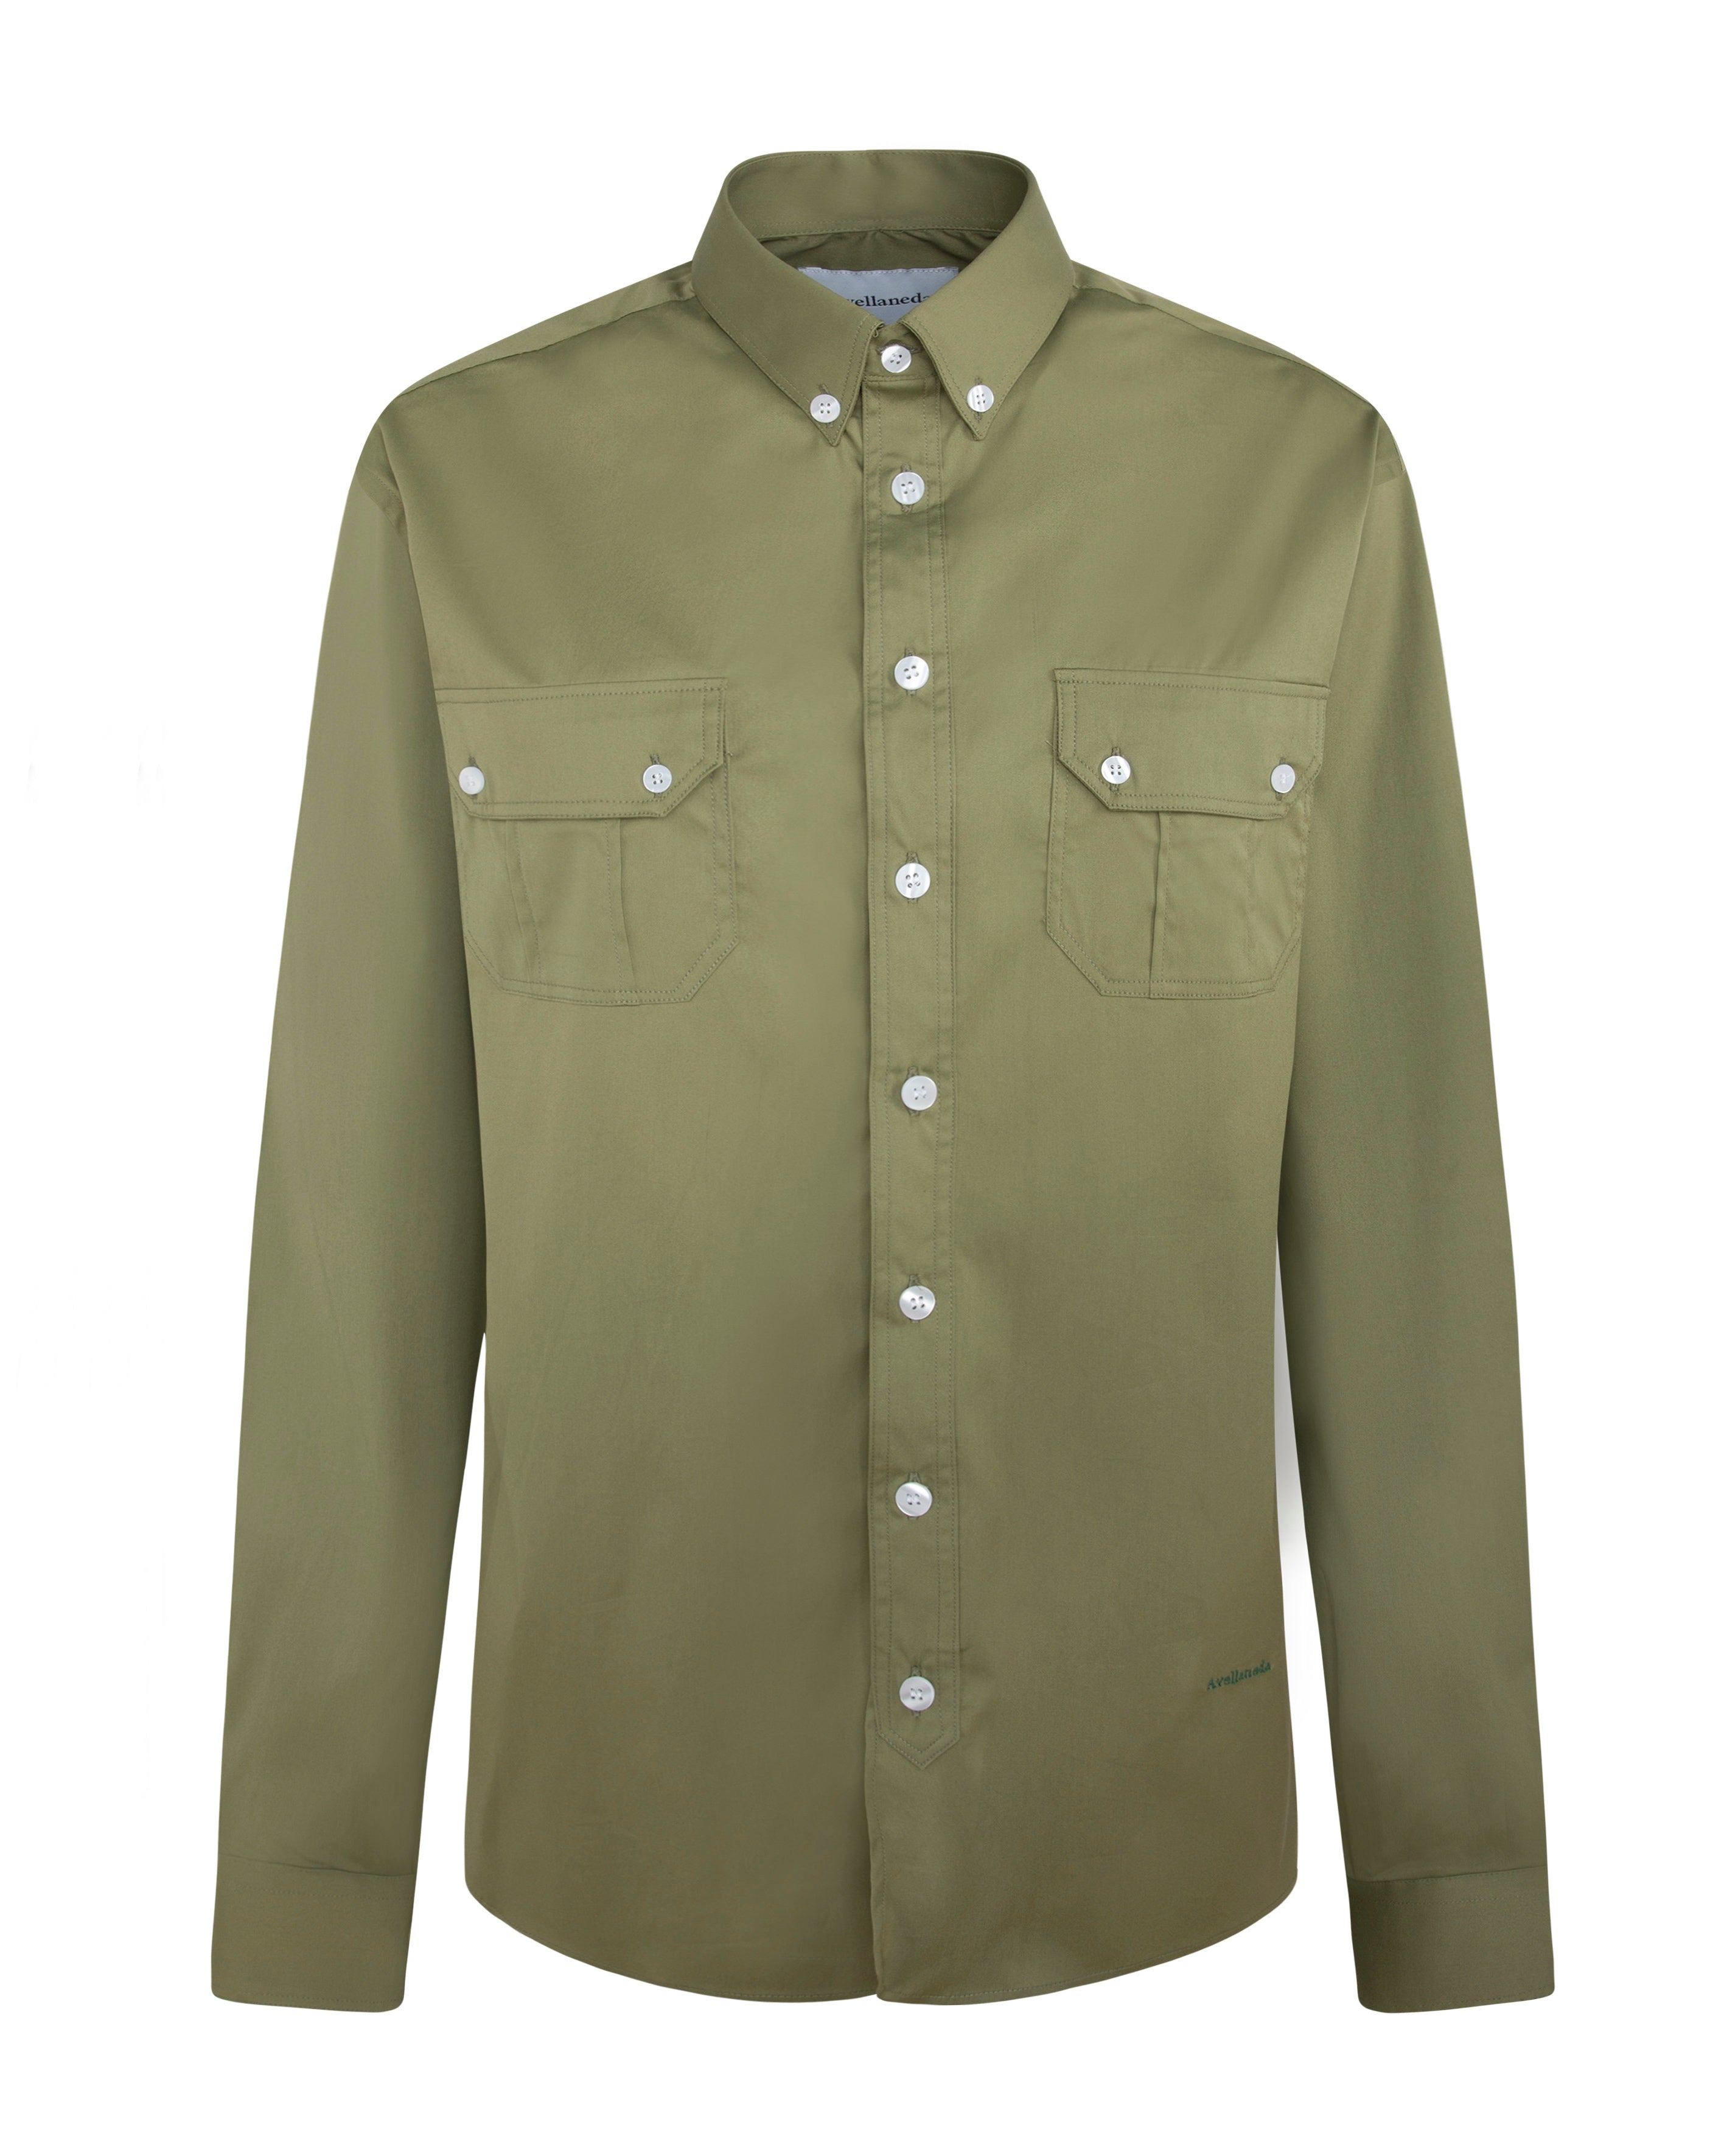 WOMEN'S GREEN BERNARD SAHARIANA SHIRT